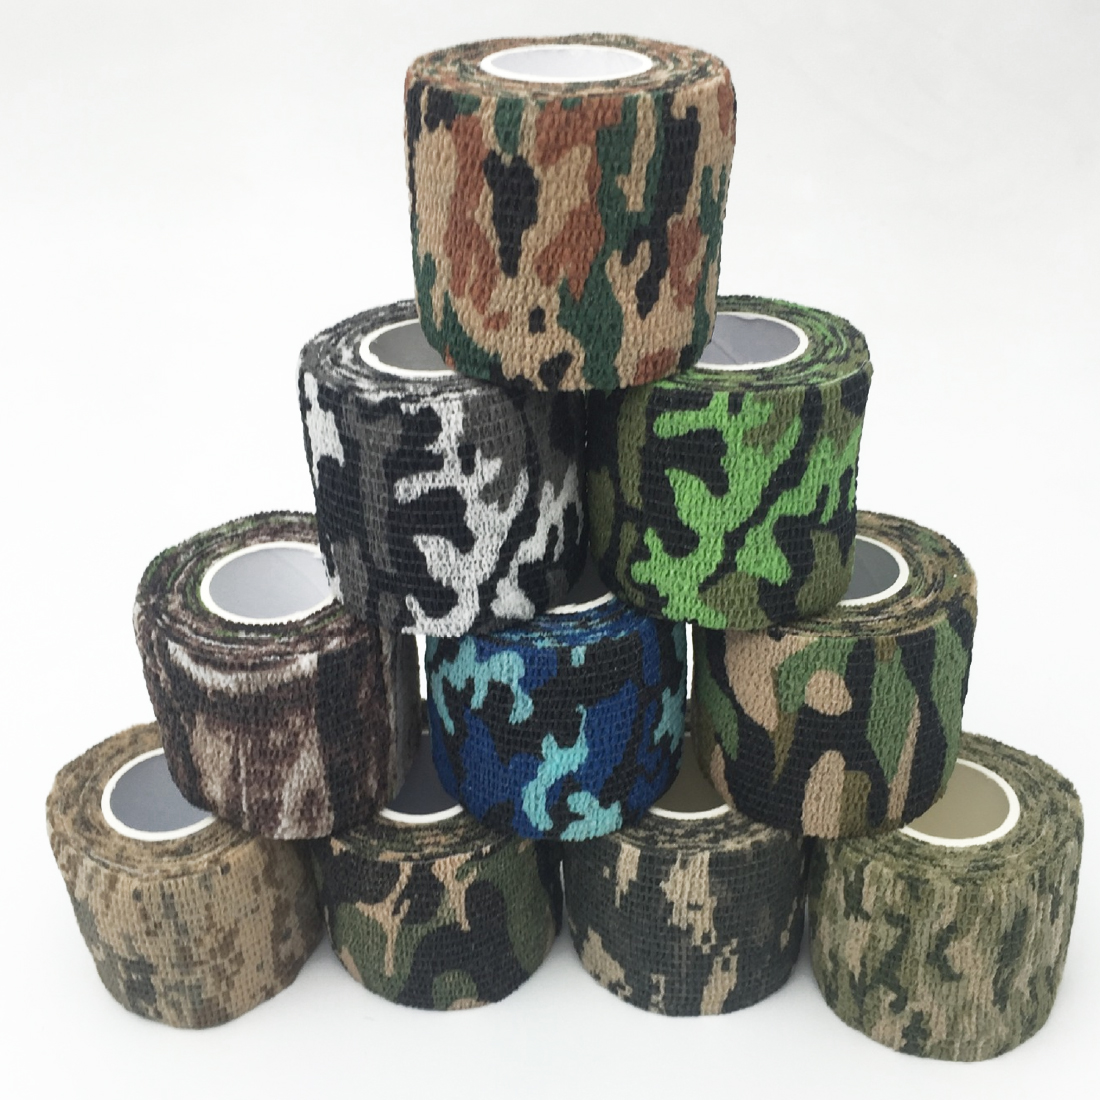 5cmx4.5m Army Camo Outdoor Hunting Shooting Tool Camouflage Stealth Tape Waterproof Wrap Durable Basketball